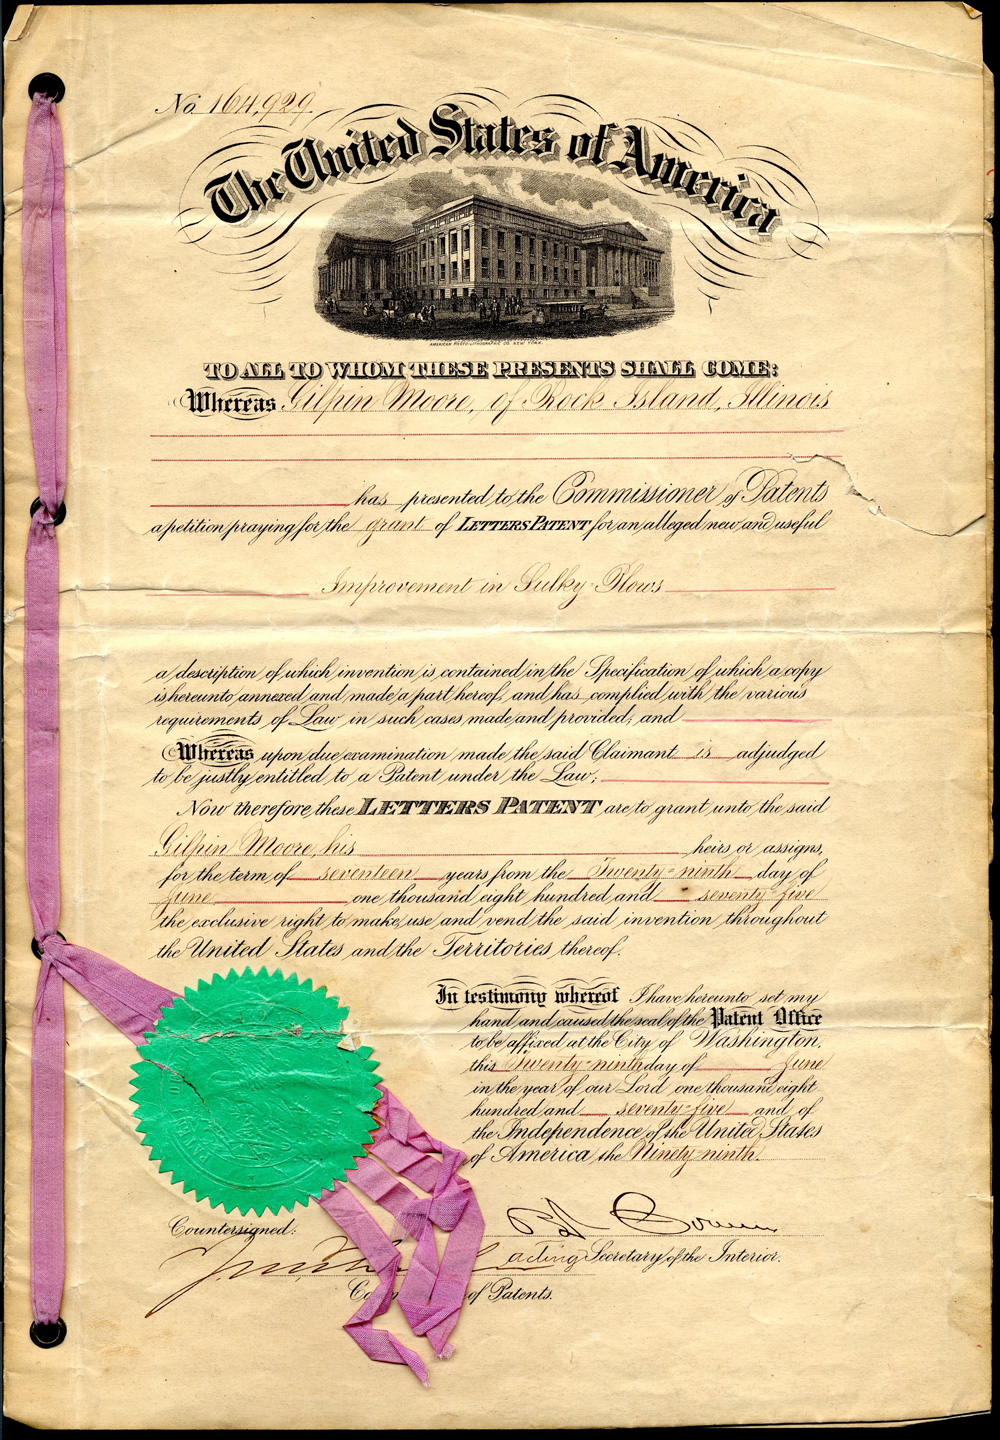 This document is the first page of a patent granted to Mr. Moore for his Gilpin Sulky Plow in 1875.